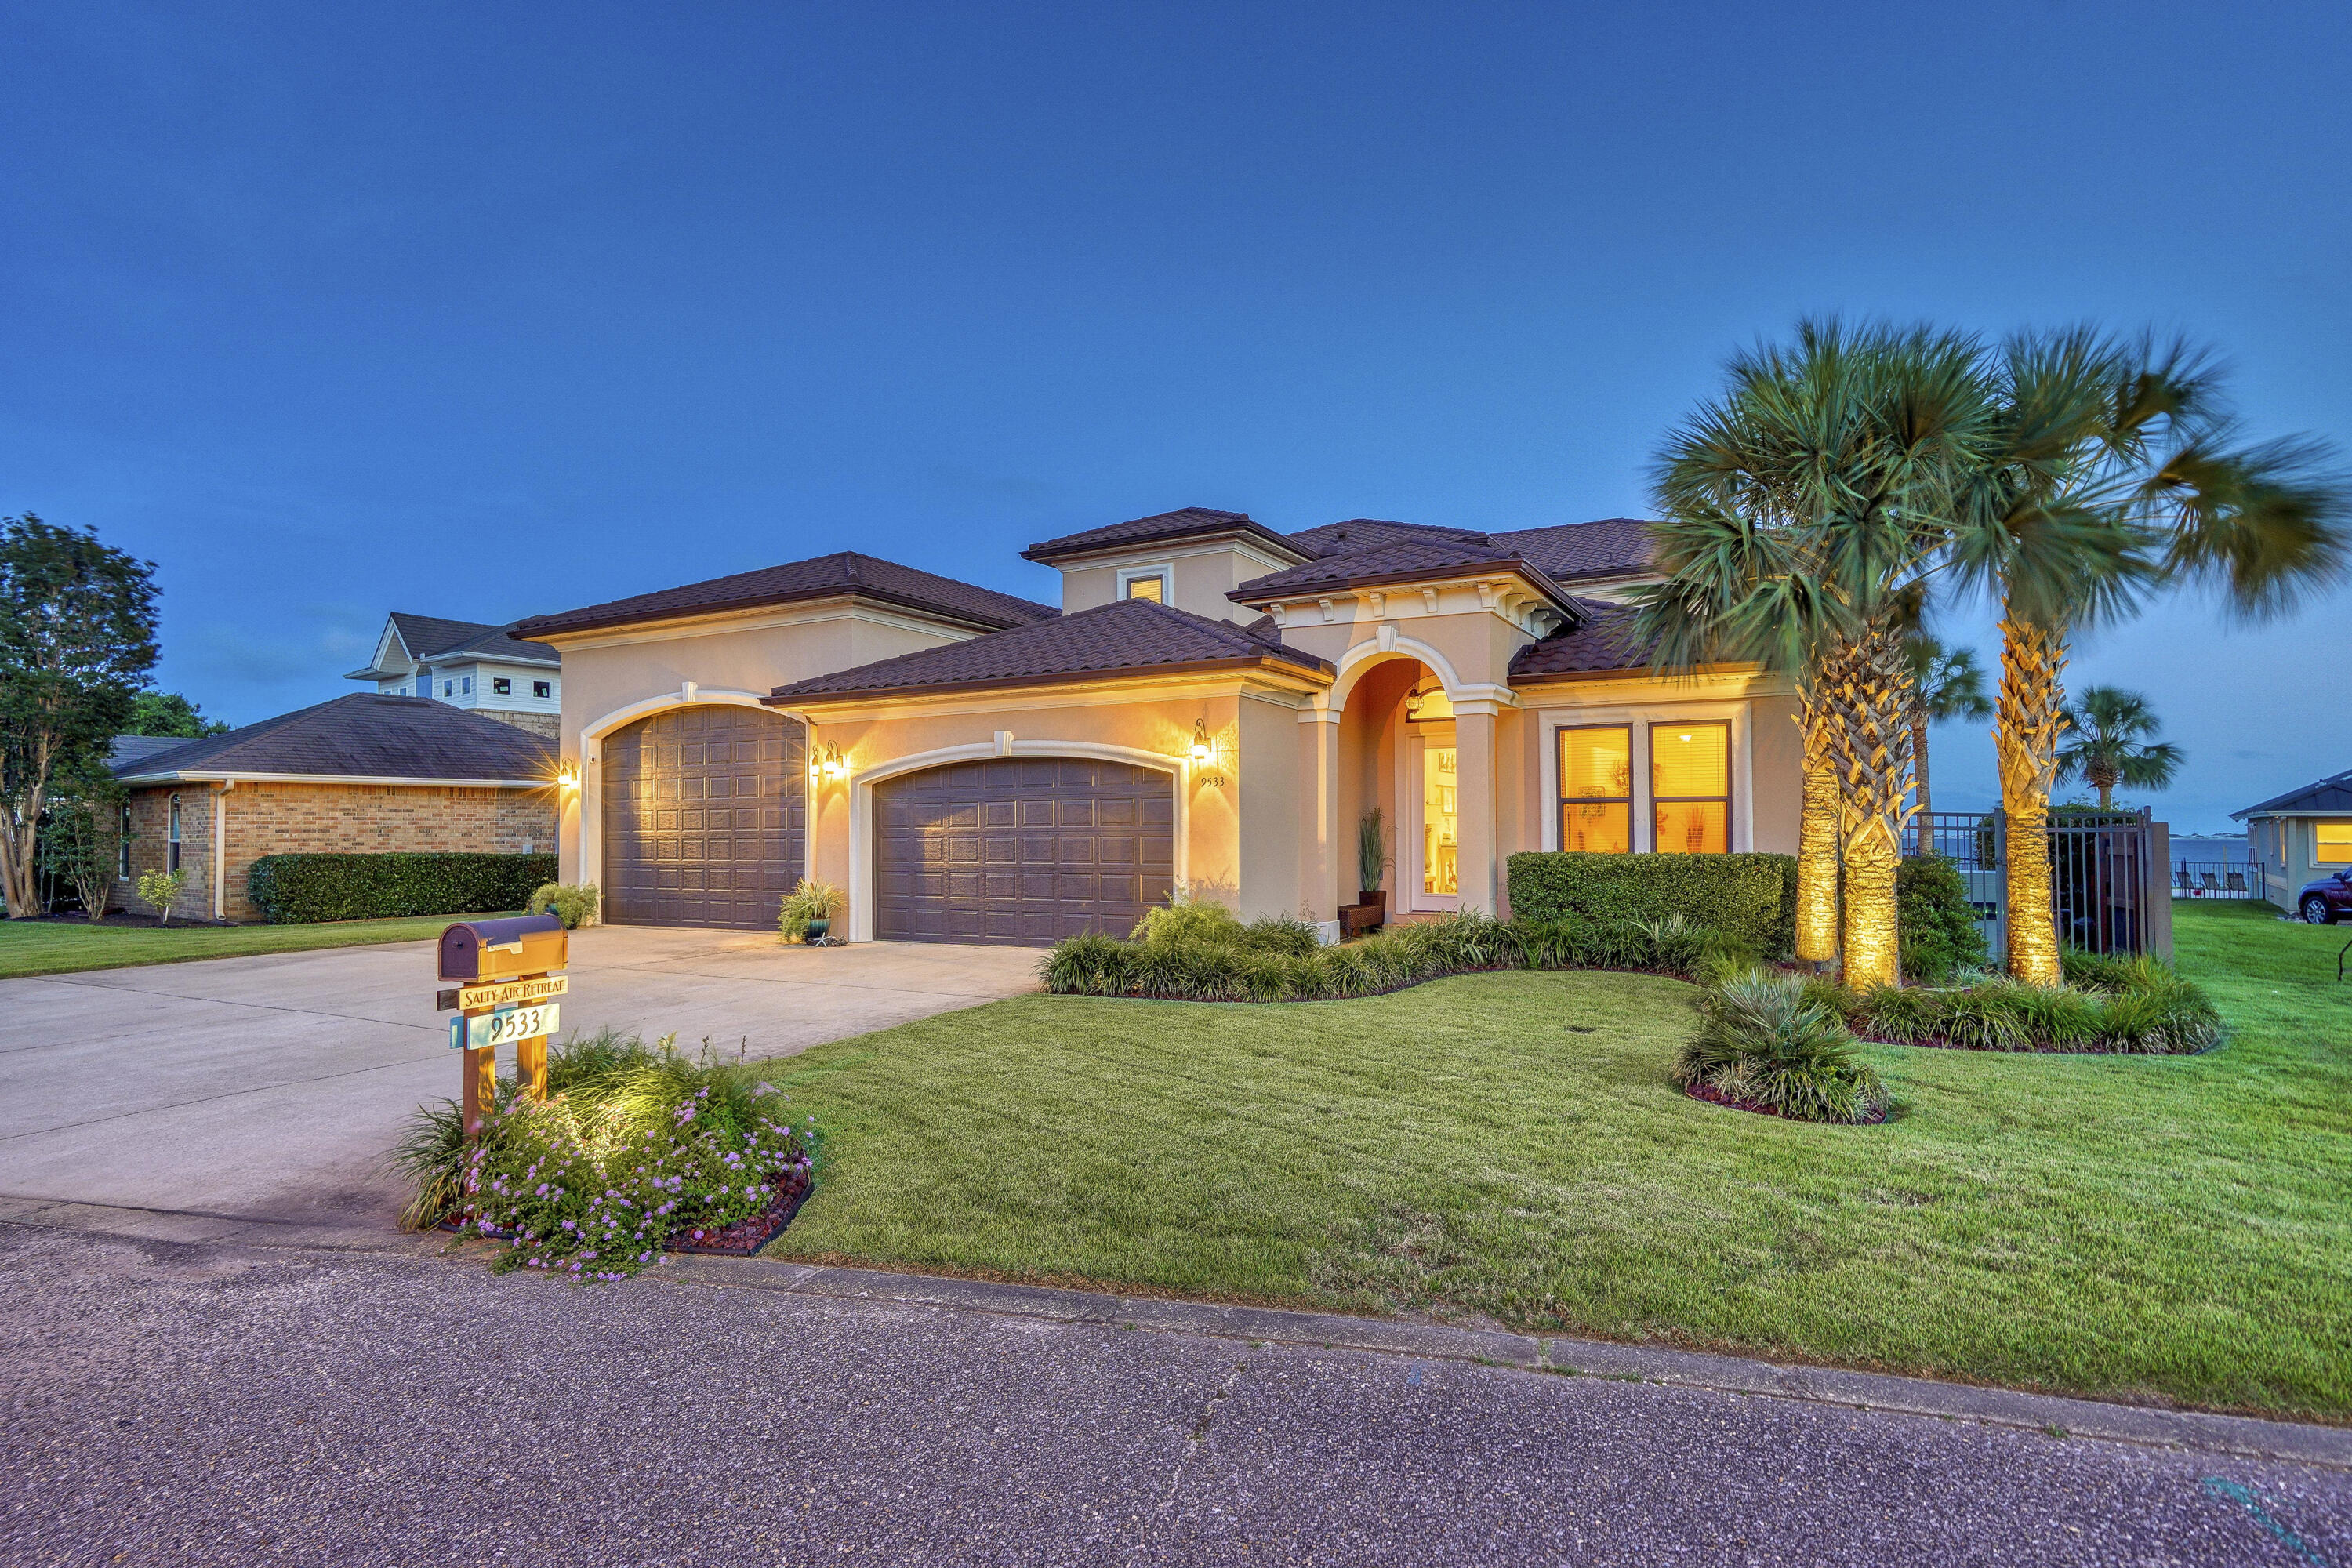 AMAZING WATERFRONT 2016 Custom Home with 4 Bedrooms, 2.5 Bathrooms, Office, Loft Area, and Bonus Room. Huge .61 Acre Sound Front Lot with 115 Feet of Prime Santa Rosa Sound Water Frontage, Boasting 3126 Sq Ft of Heated & Cooled Living Space and a Total Space Under the Roof of 5568 Sq Ft! This Incredible Home is Equipped with a 3 Car Garage AND an Almost 1K Sq Ft RV/Boat Garage with 16 Ft Ceilings AND is Located in FLOOD ZONE X, AND has a Whole Home Generator! Relax in the Back Yard Oasis Outfitted with a Large In-Ground GUNITE Pool, Deck, and Fountain, Ample Yard Space, and Jawdropping Water Views. Ever Dreamed of Having Everything you Want in a Home AND be on the Water? THIS IS IT! Upon Entering this Gorgeous and Immaculately Maintained Home, Notice the Fine Details Throughout.. More... such as Beautiful Wood-Look Tile Flooring, Crown Molding, Recessed Lighting, 10 Ft Smooth Ceilings, 8 Ft Doors, Modern Finishes, Fixtures, and Hardware, Open Floorplan with Tons of Natural Light and TREMENDOUS Water Views!  Step into the Kitchen and Find Plenty of Counterspace and Beautiful Cabinetry, Pantry, Thick & Gorgeous Quartzite Countertops, with Quartzite Topped Island, and Modern Conveniences such as Touch Kitchen Faucet.  The 1st Floor has a Dreamy Master Bedroom and Bathroom, both with Incredible Waterviews and Tons of Natural Light. Inside the Master Bedroom are Tray Ceilings, Recessed Lighting, and Private Doors to the Back Deck & Pool. The Master Bath is Stunning, with Separate Stone Vanities, Large Walk-in Glass Shower, and Soaker Tub that Looks out to the Sound. The 2nd Floor has Three Bedrooms with a Loft Large Enough for a Second Living Room, as well as a Bonus Room. The Two South Rooms as well as Second Floor Deck have Incredible Panoramic Water Views. The Deck and Railing Material are Tile and Aluminum for Lower Maintenance Waterfront Living. Be Amazed as you Look over the Gorgeous Pool Oasis, the Large Back Yard, Sodded with Zoysia Grass, and Equipped with a Win